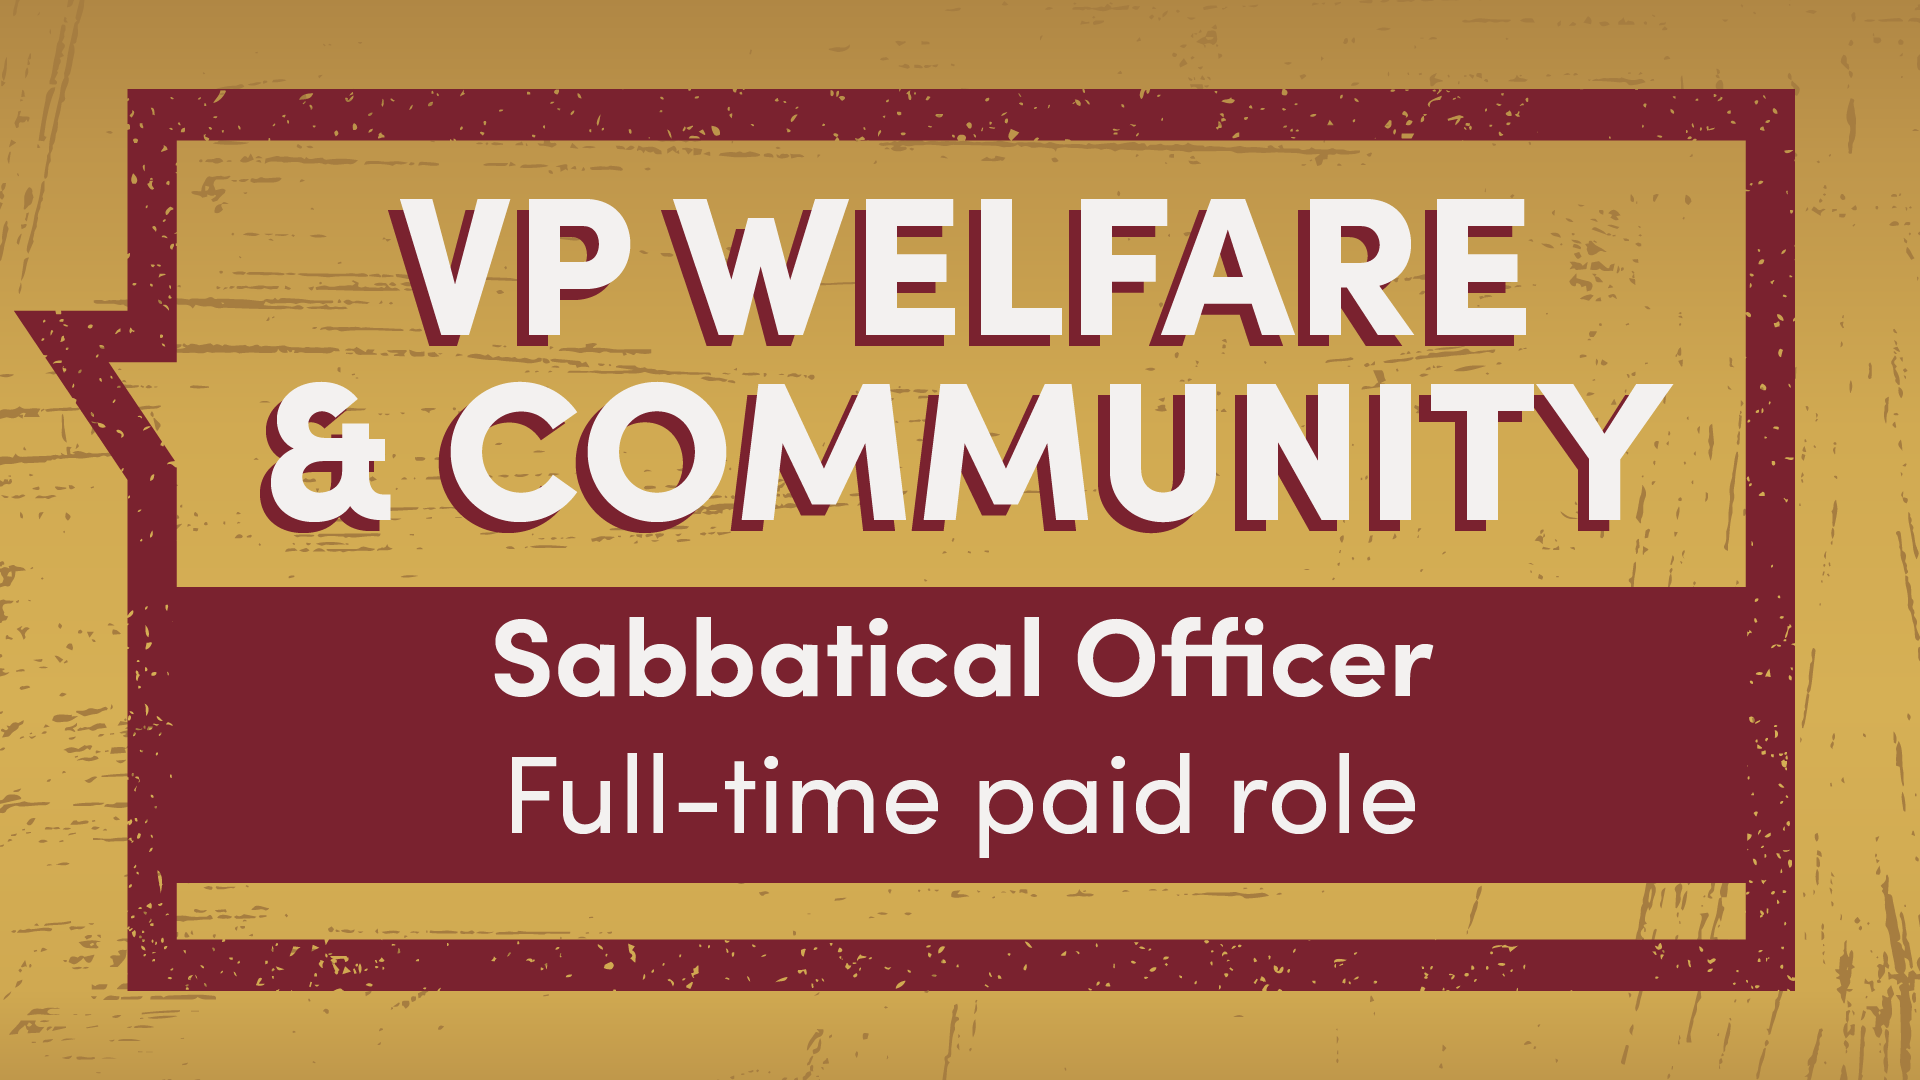 VP Welfare and Community Sabbatical Officer full-time paid role